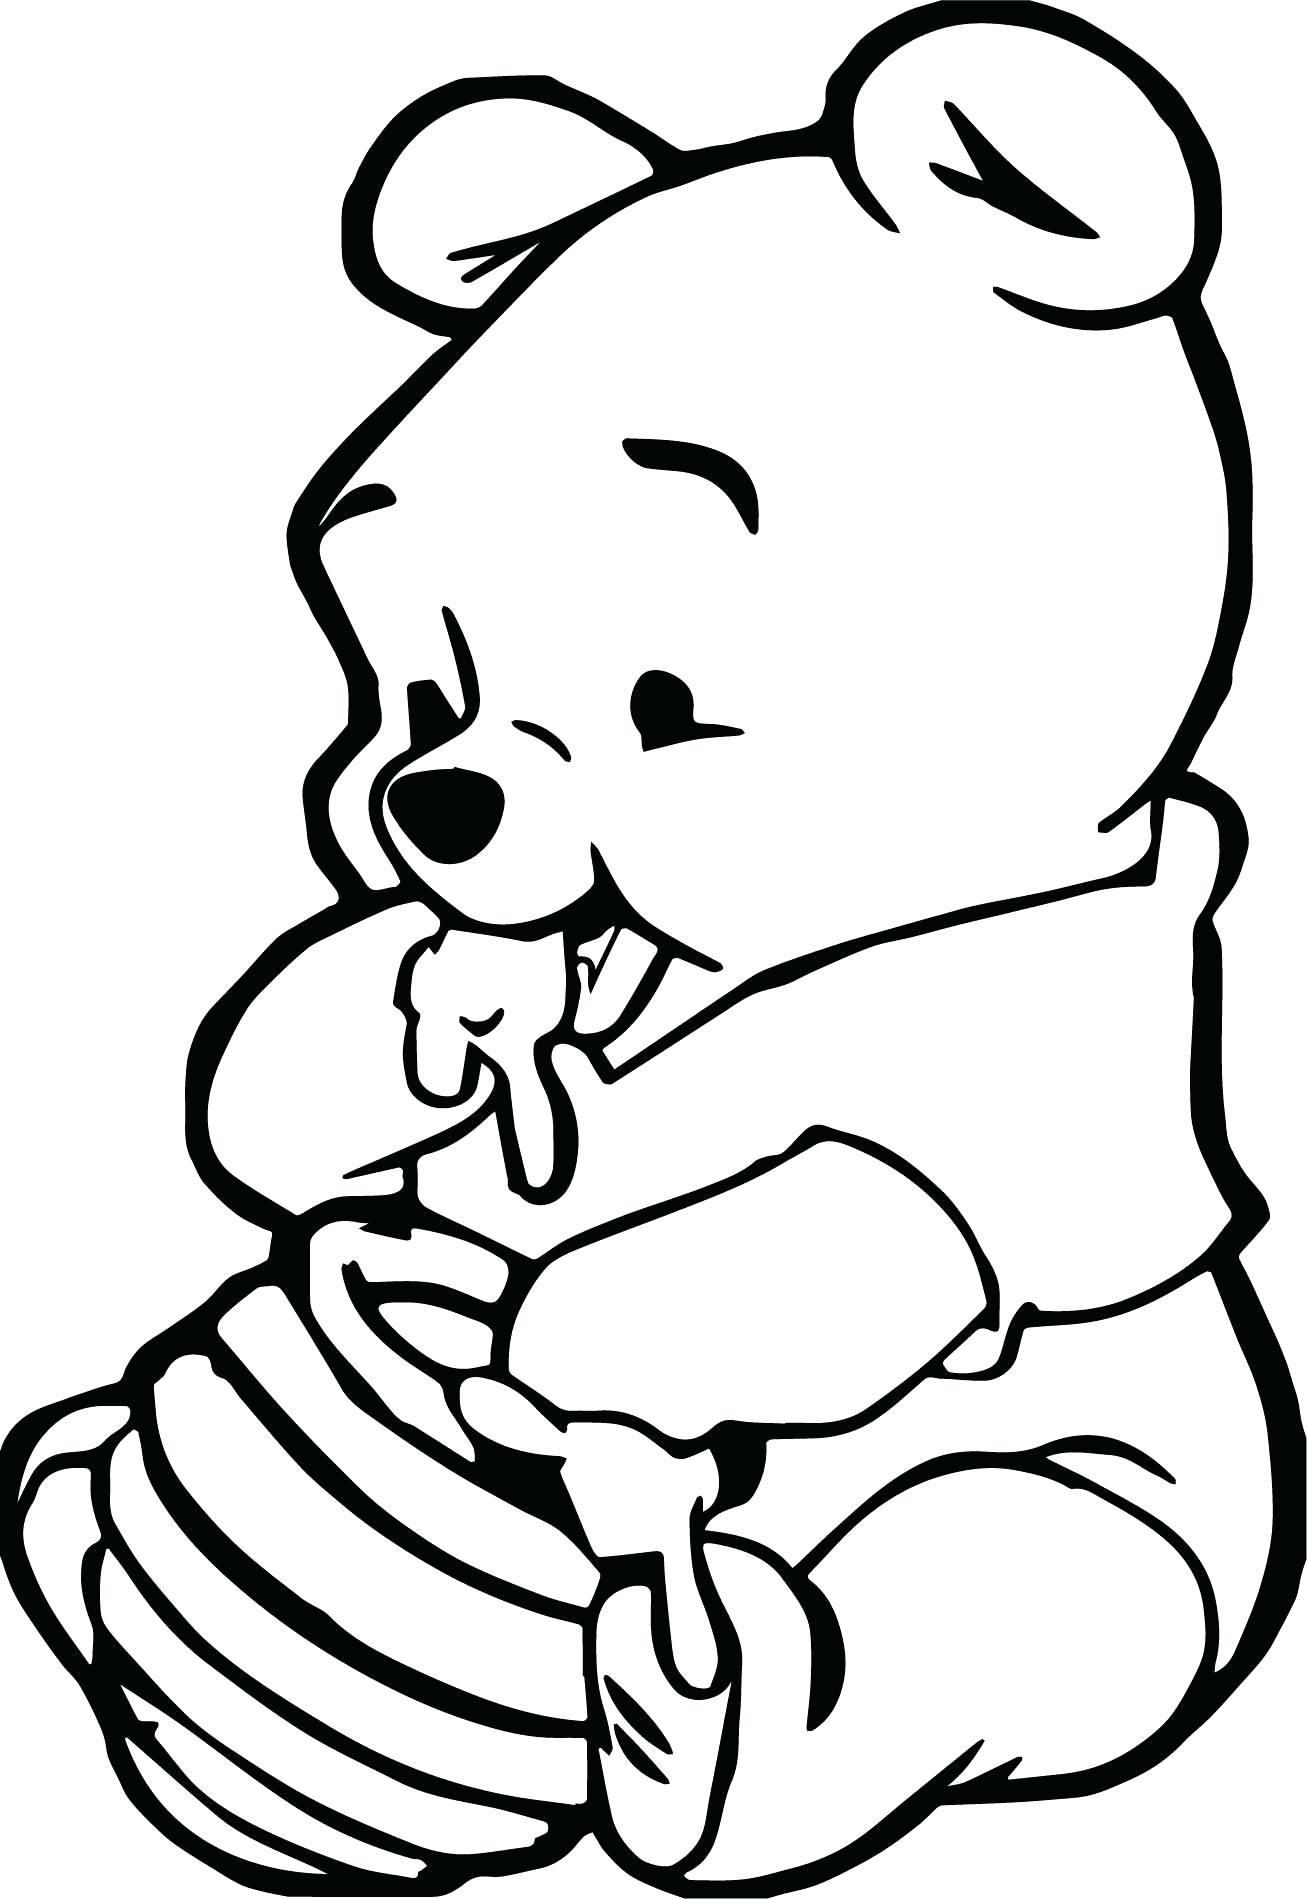 42 Coloring Page Winnie The Pooh Animal Coloring Pages Zoo Animal Coloring Pages Disney Coloring Pages